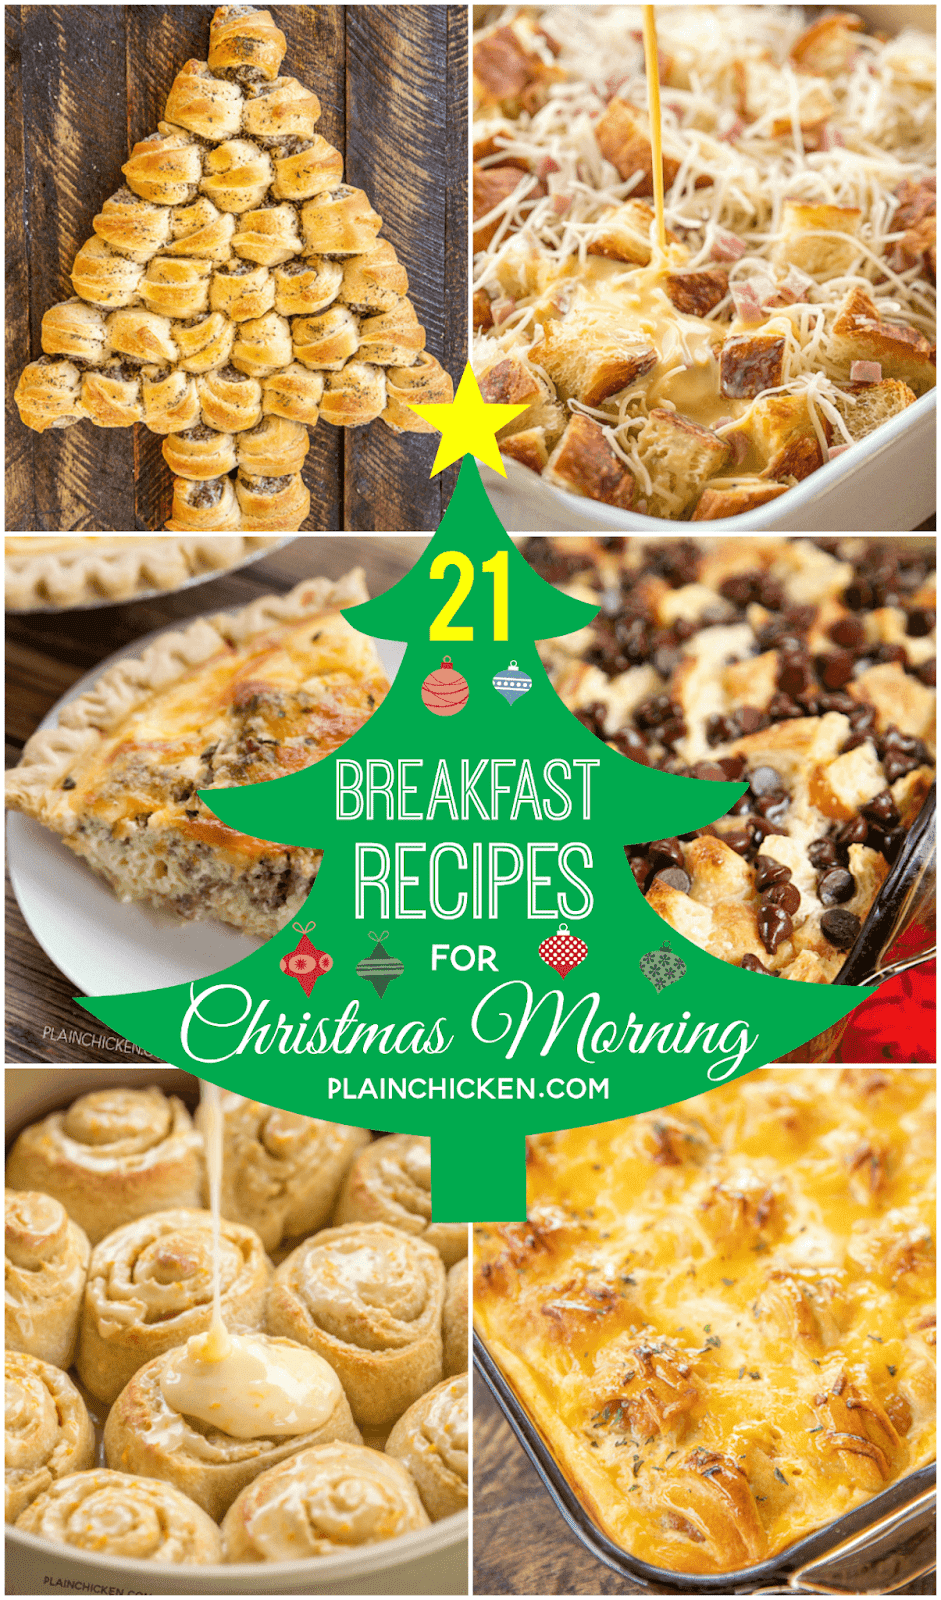 21 Breakfast Recipes for Christmas Morning - something for everyone! Sweet and savory. Casseroles and finger foods. These are all tried and true recipes that will make your holiday morning delicious!